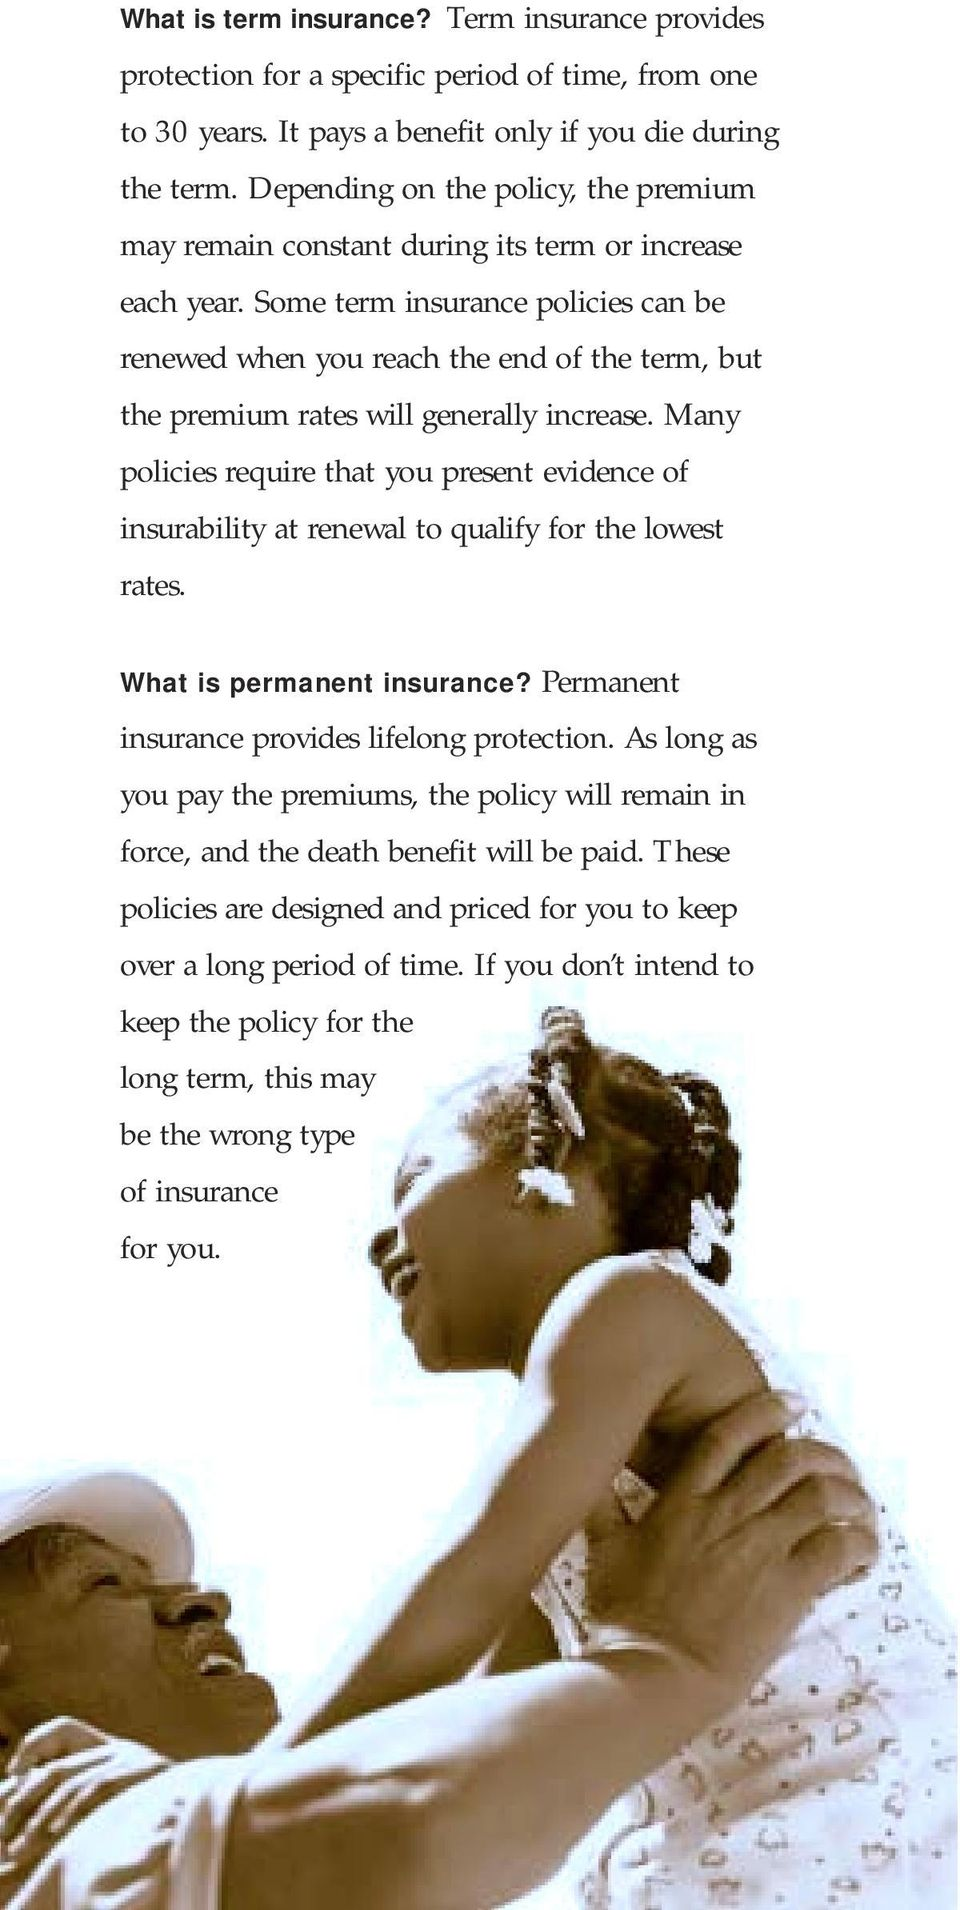 Some term insurance policies can be renewed when you reach the end of the term, but the premium rates will generally increase.